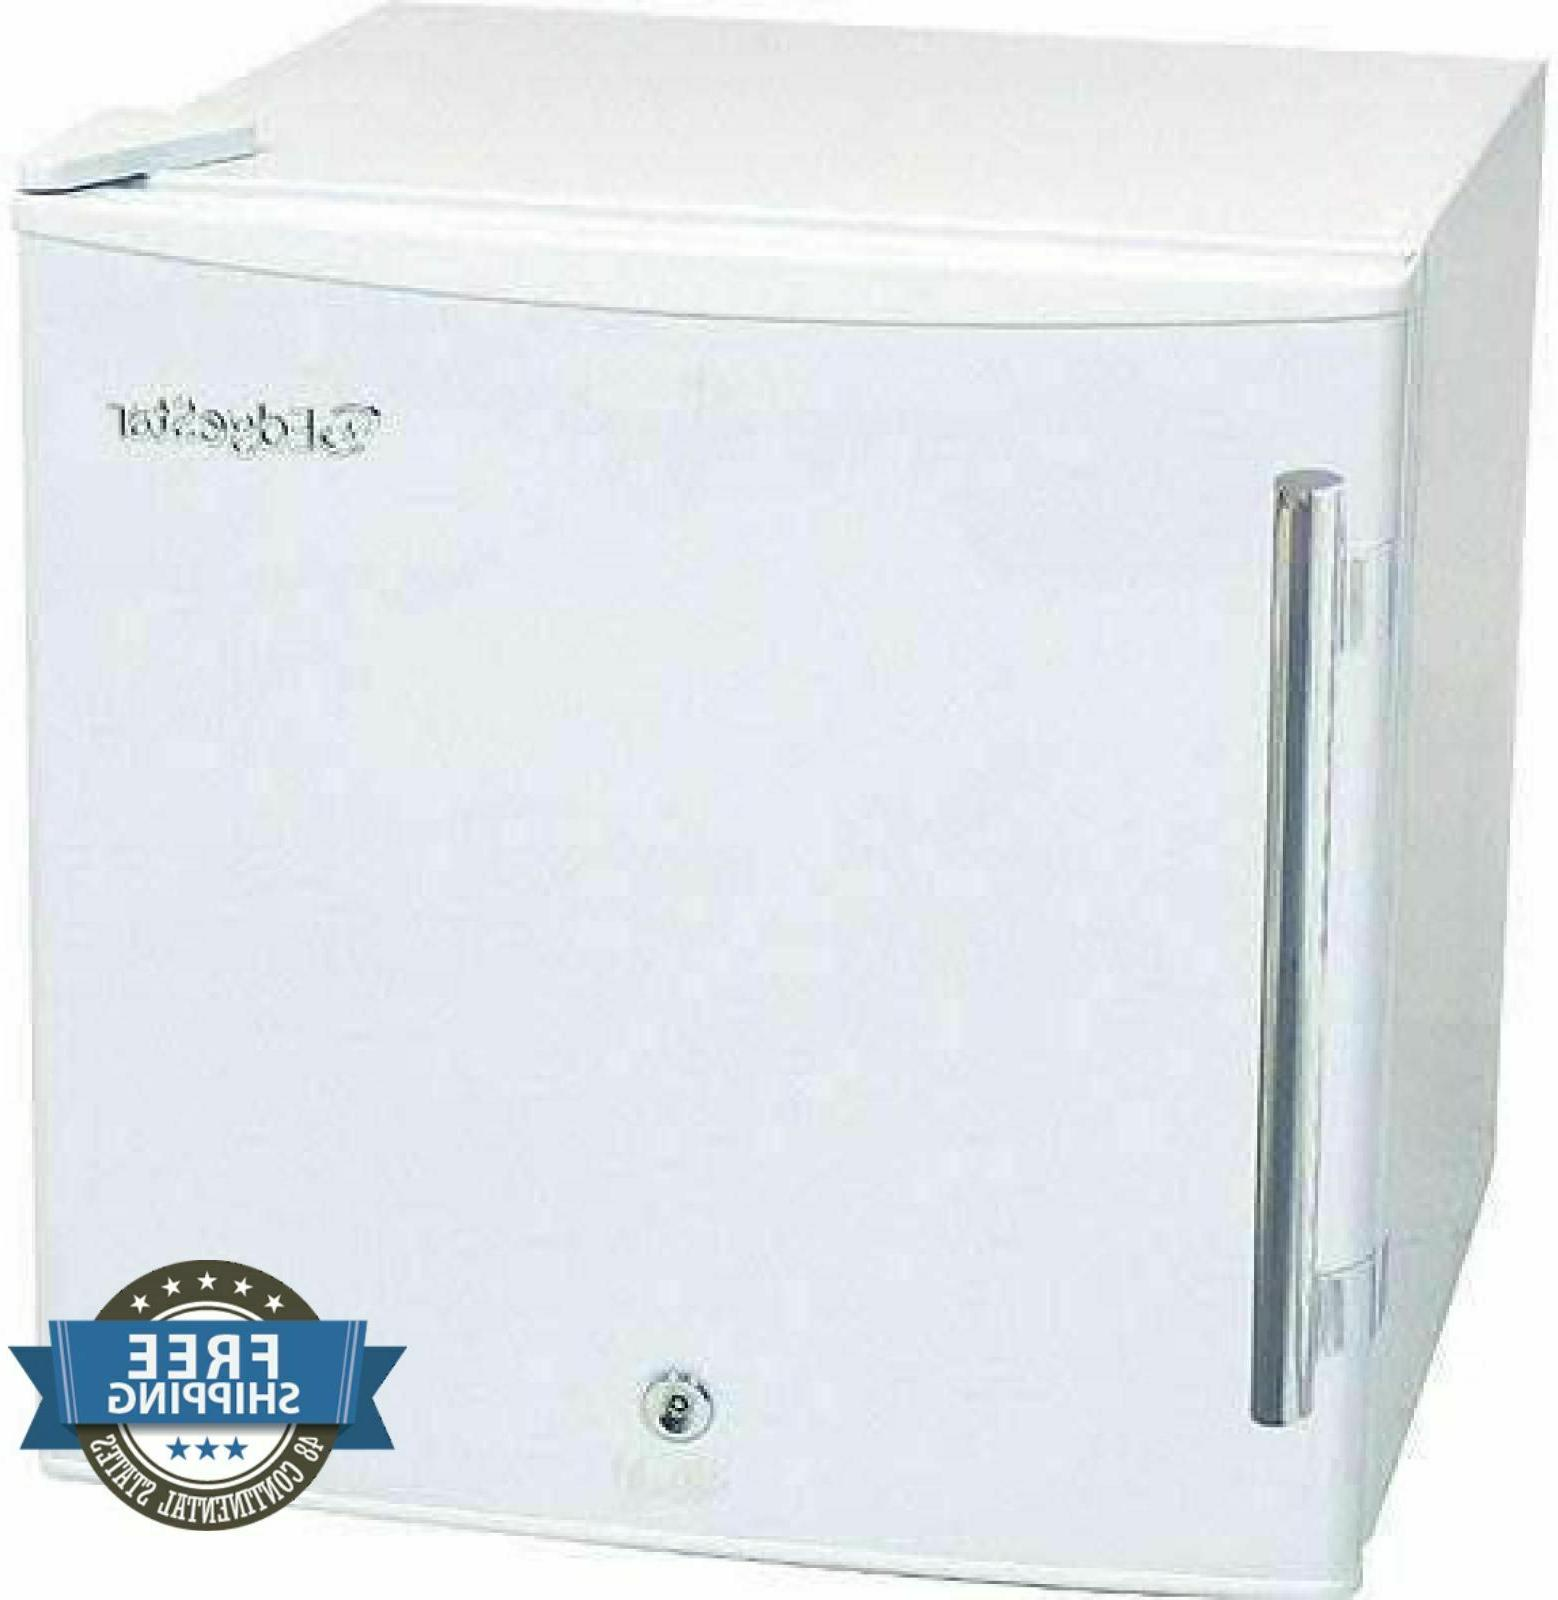 EdgeStar 1.1 Cu. Ft. Medical Freezer with Lock - White